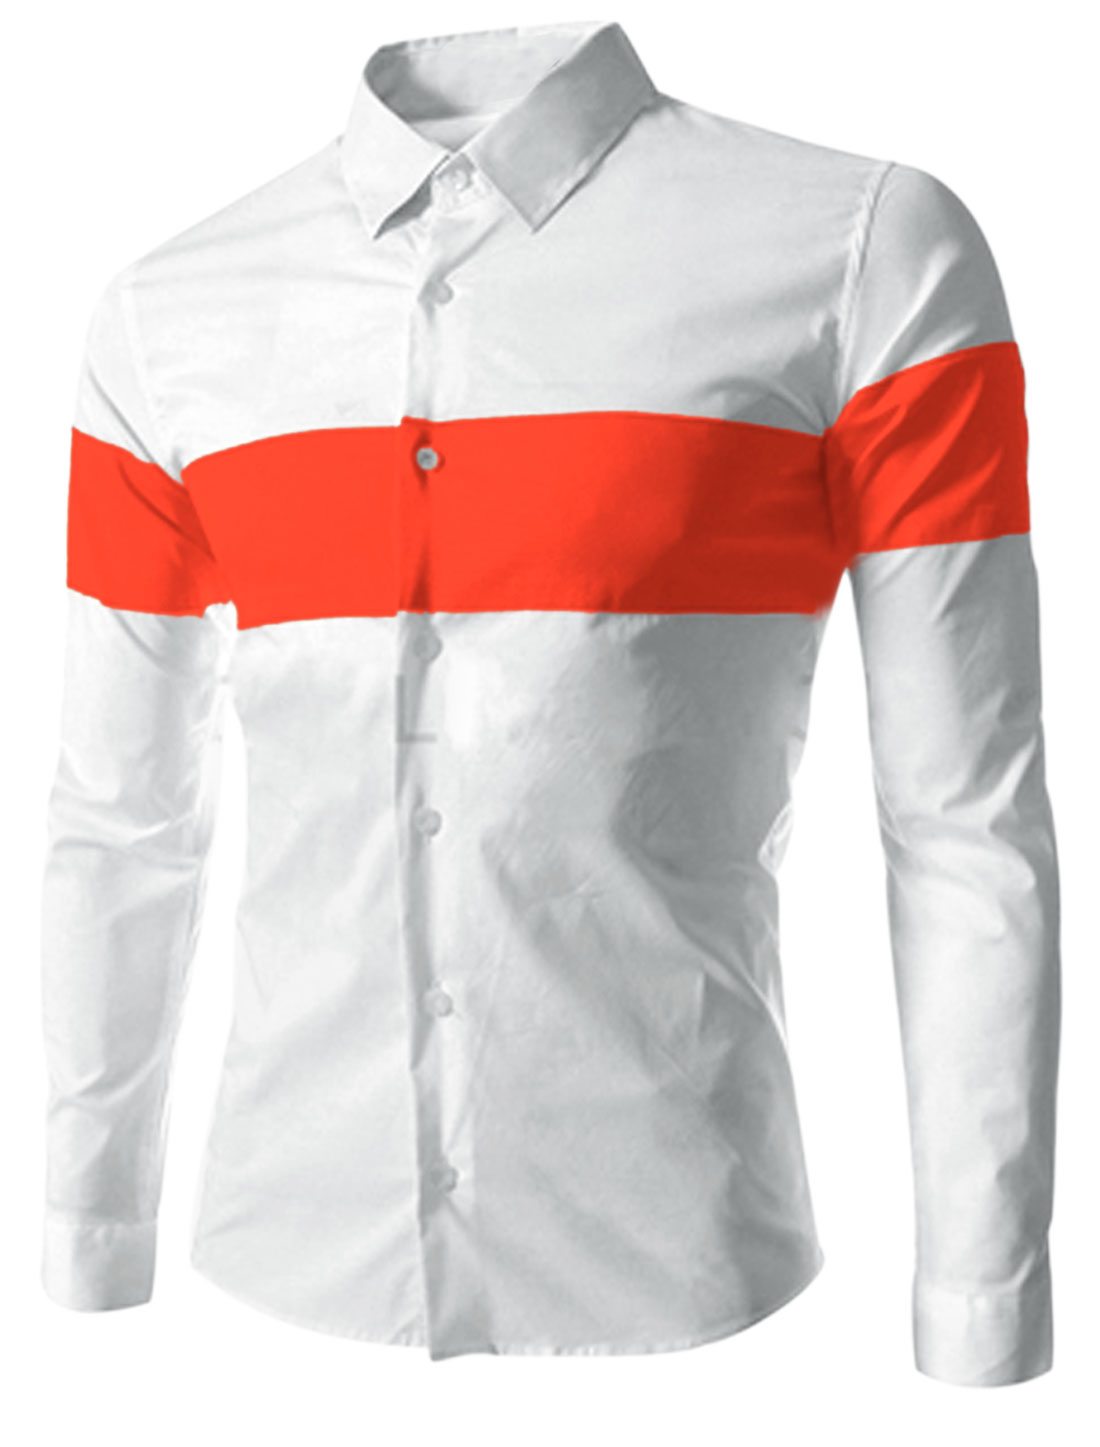 Men NEW Single Breasted Contrast Color Casual Top Shirt Orange White M